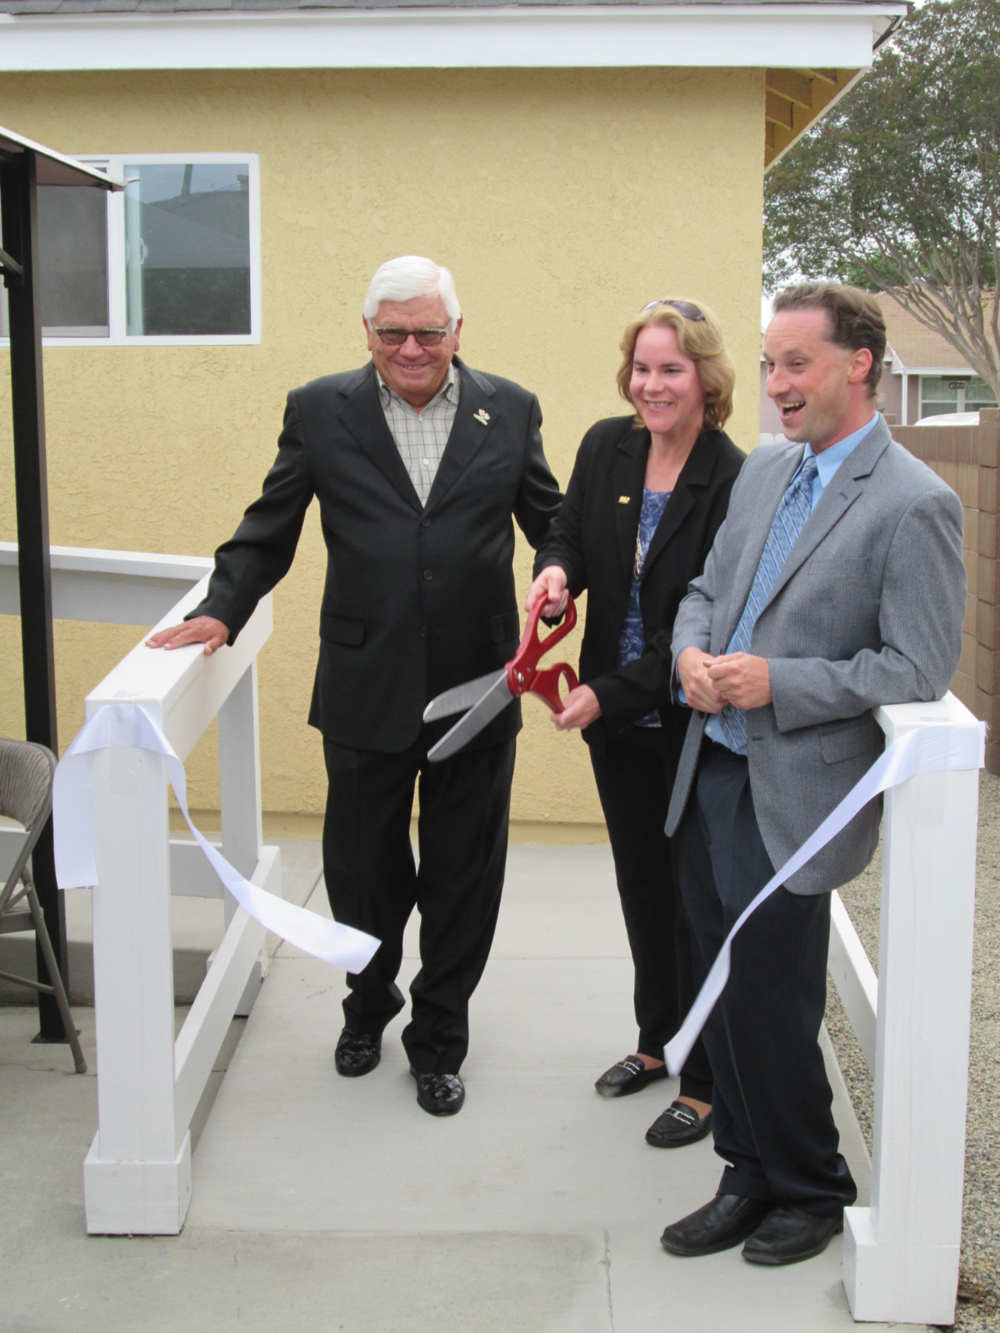 From left: Board Member Phil Appleby, Norwalk Housing Manager Kristin Maithonis, and HOPE Executive Director Kristin Martin cut the ceremonial ribbon to welcome  the completion of a new home.